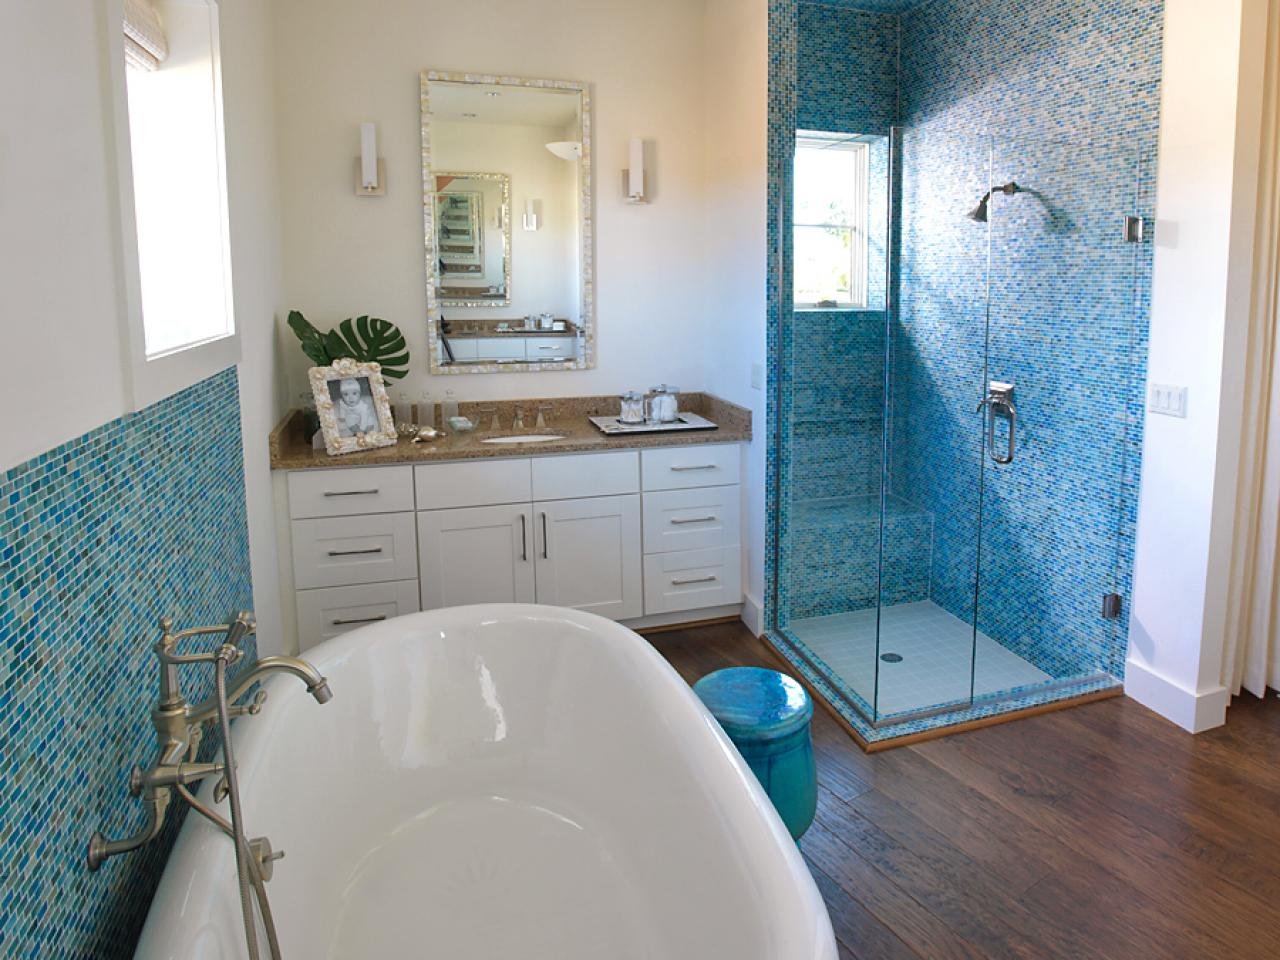 Best of designers 39 portfolio bathrooms bathroom ideas designs hgtv - Best bathrooms designs ...